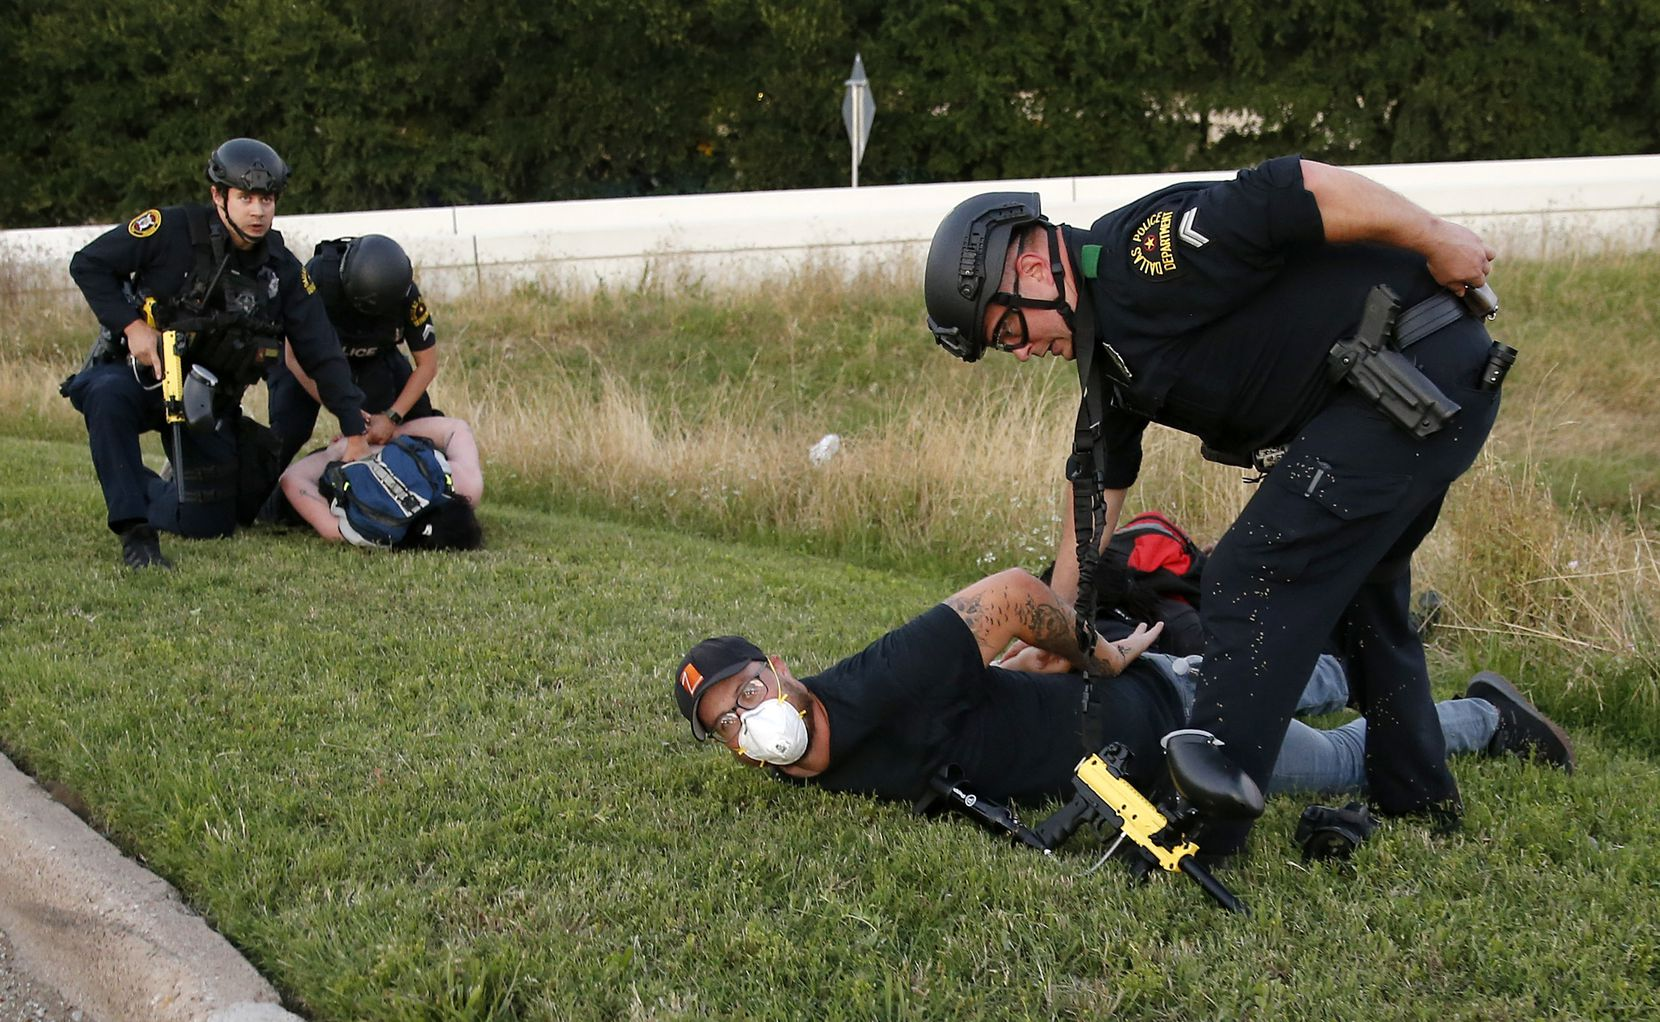 Photographer Chris Rusanowsky (right) was arrested just minutes after capturing photos of the pepper ball shooting.